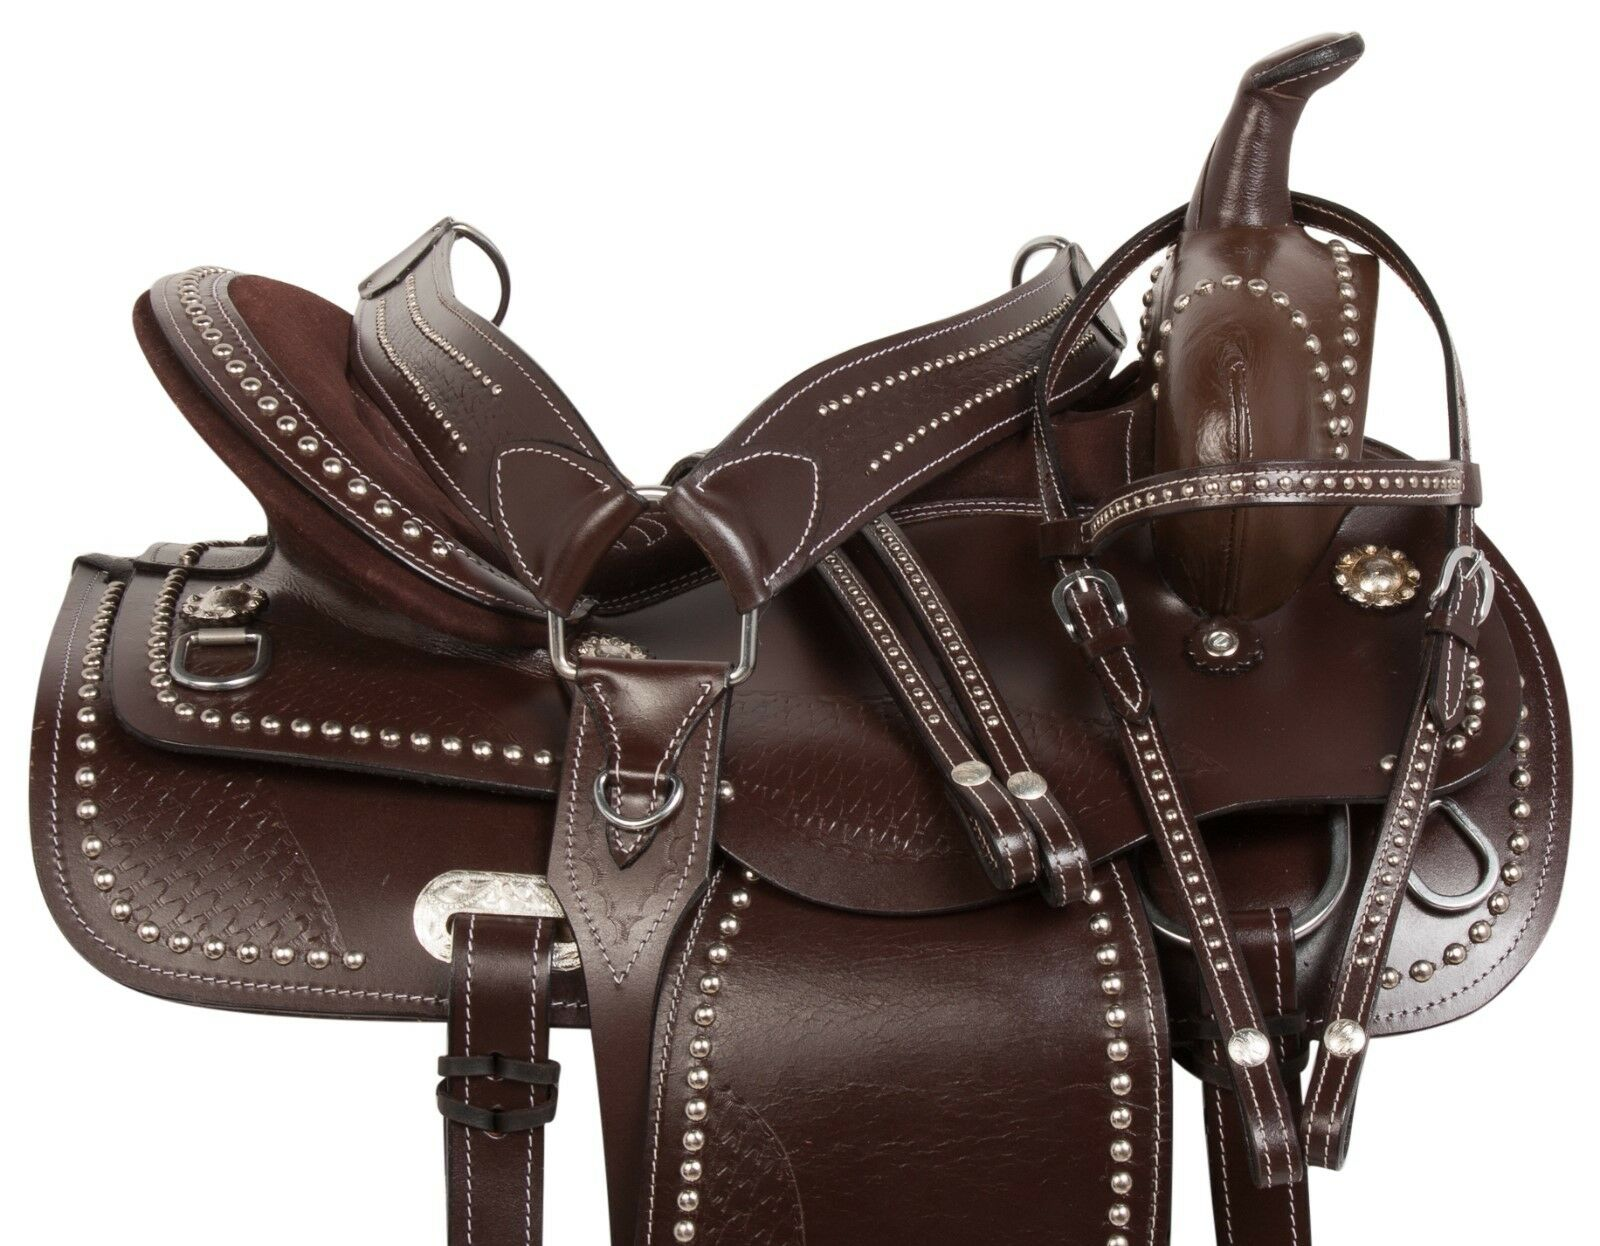 16 LIGHT WEIGHT WESTERN SADDLE BROWN LEATHER GAITED HORSE TRAIL SADDLE